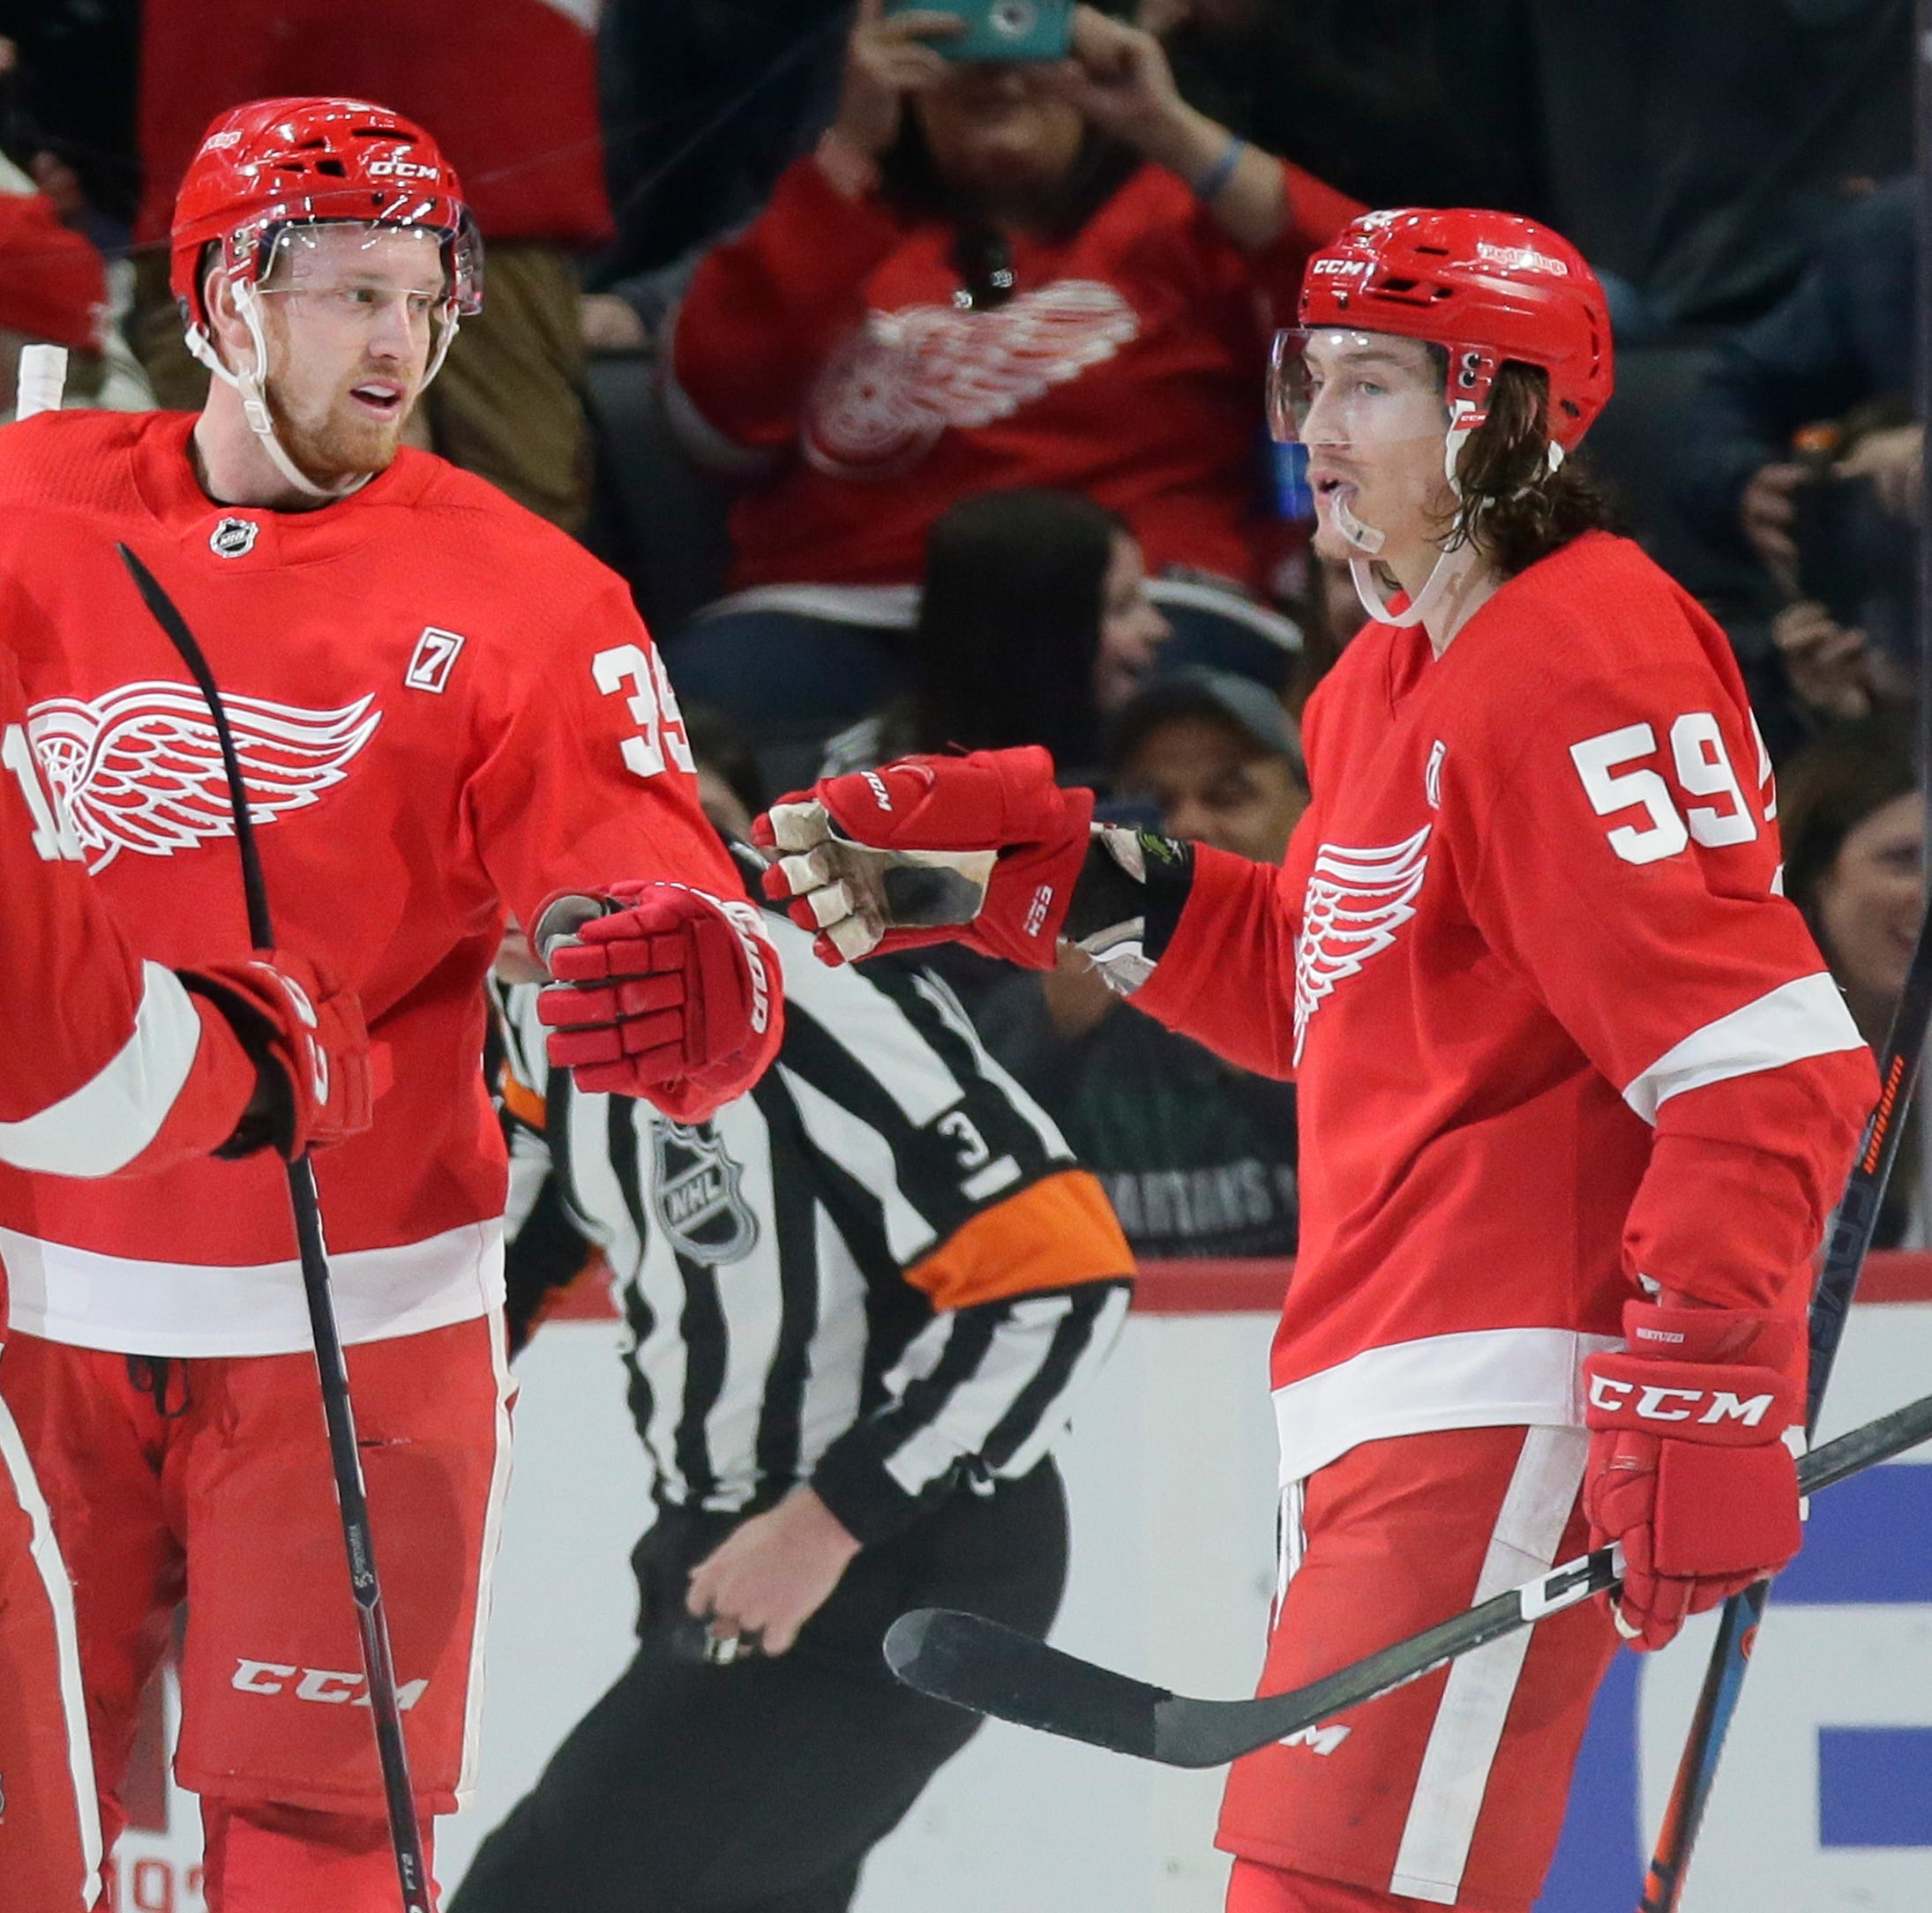 These Detroit Red Wings have been invited to play at World Championship